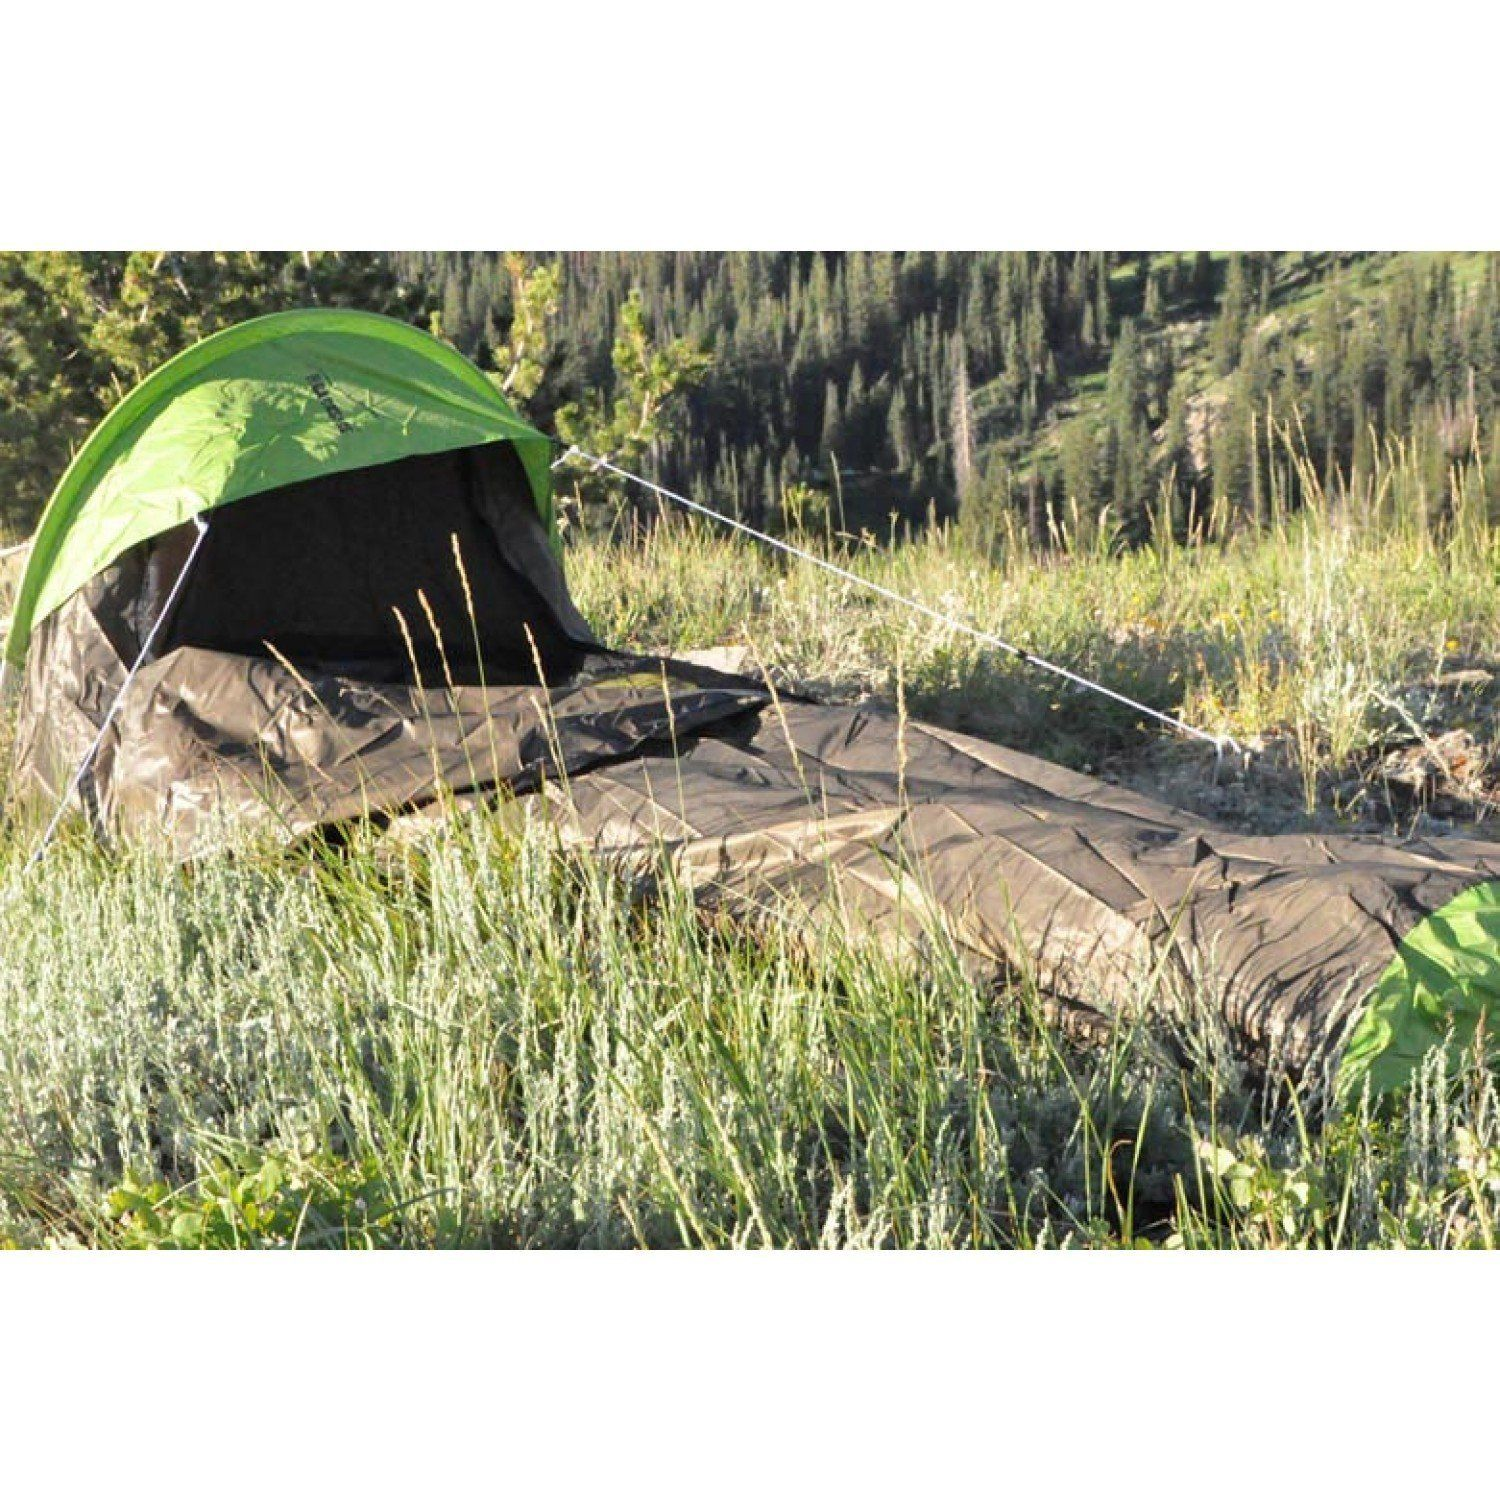 The Backside by Black Pine T-7 T-Series 1-Person 3-  sc 1 st  Pinterest : 1 person 3 season tent - memphite.com